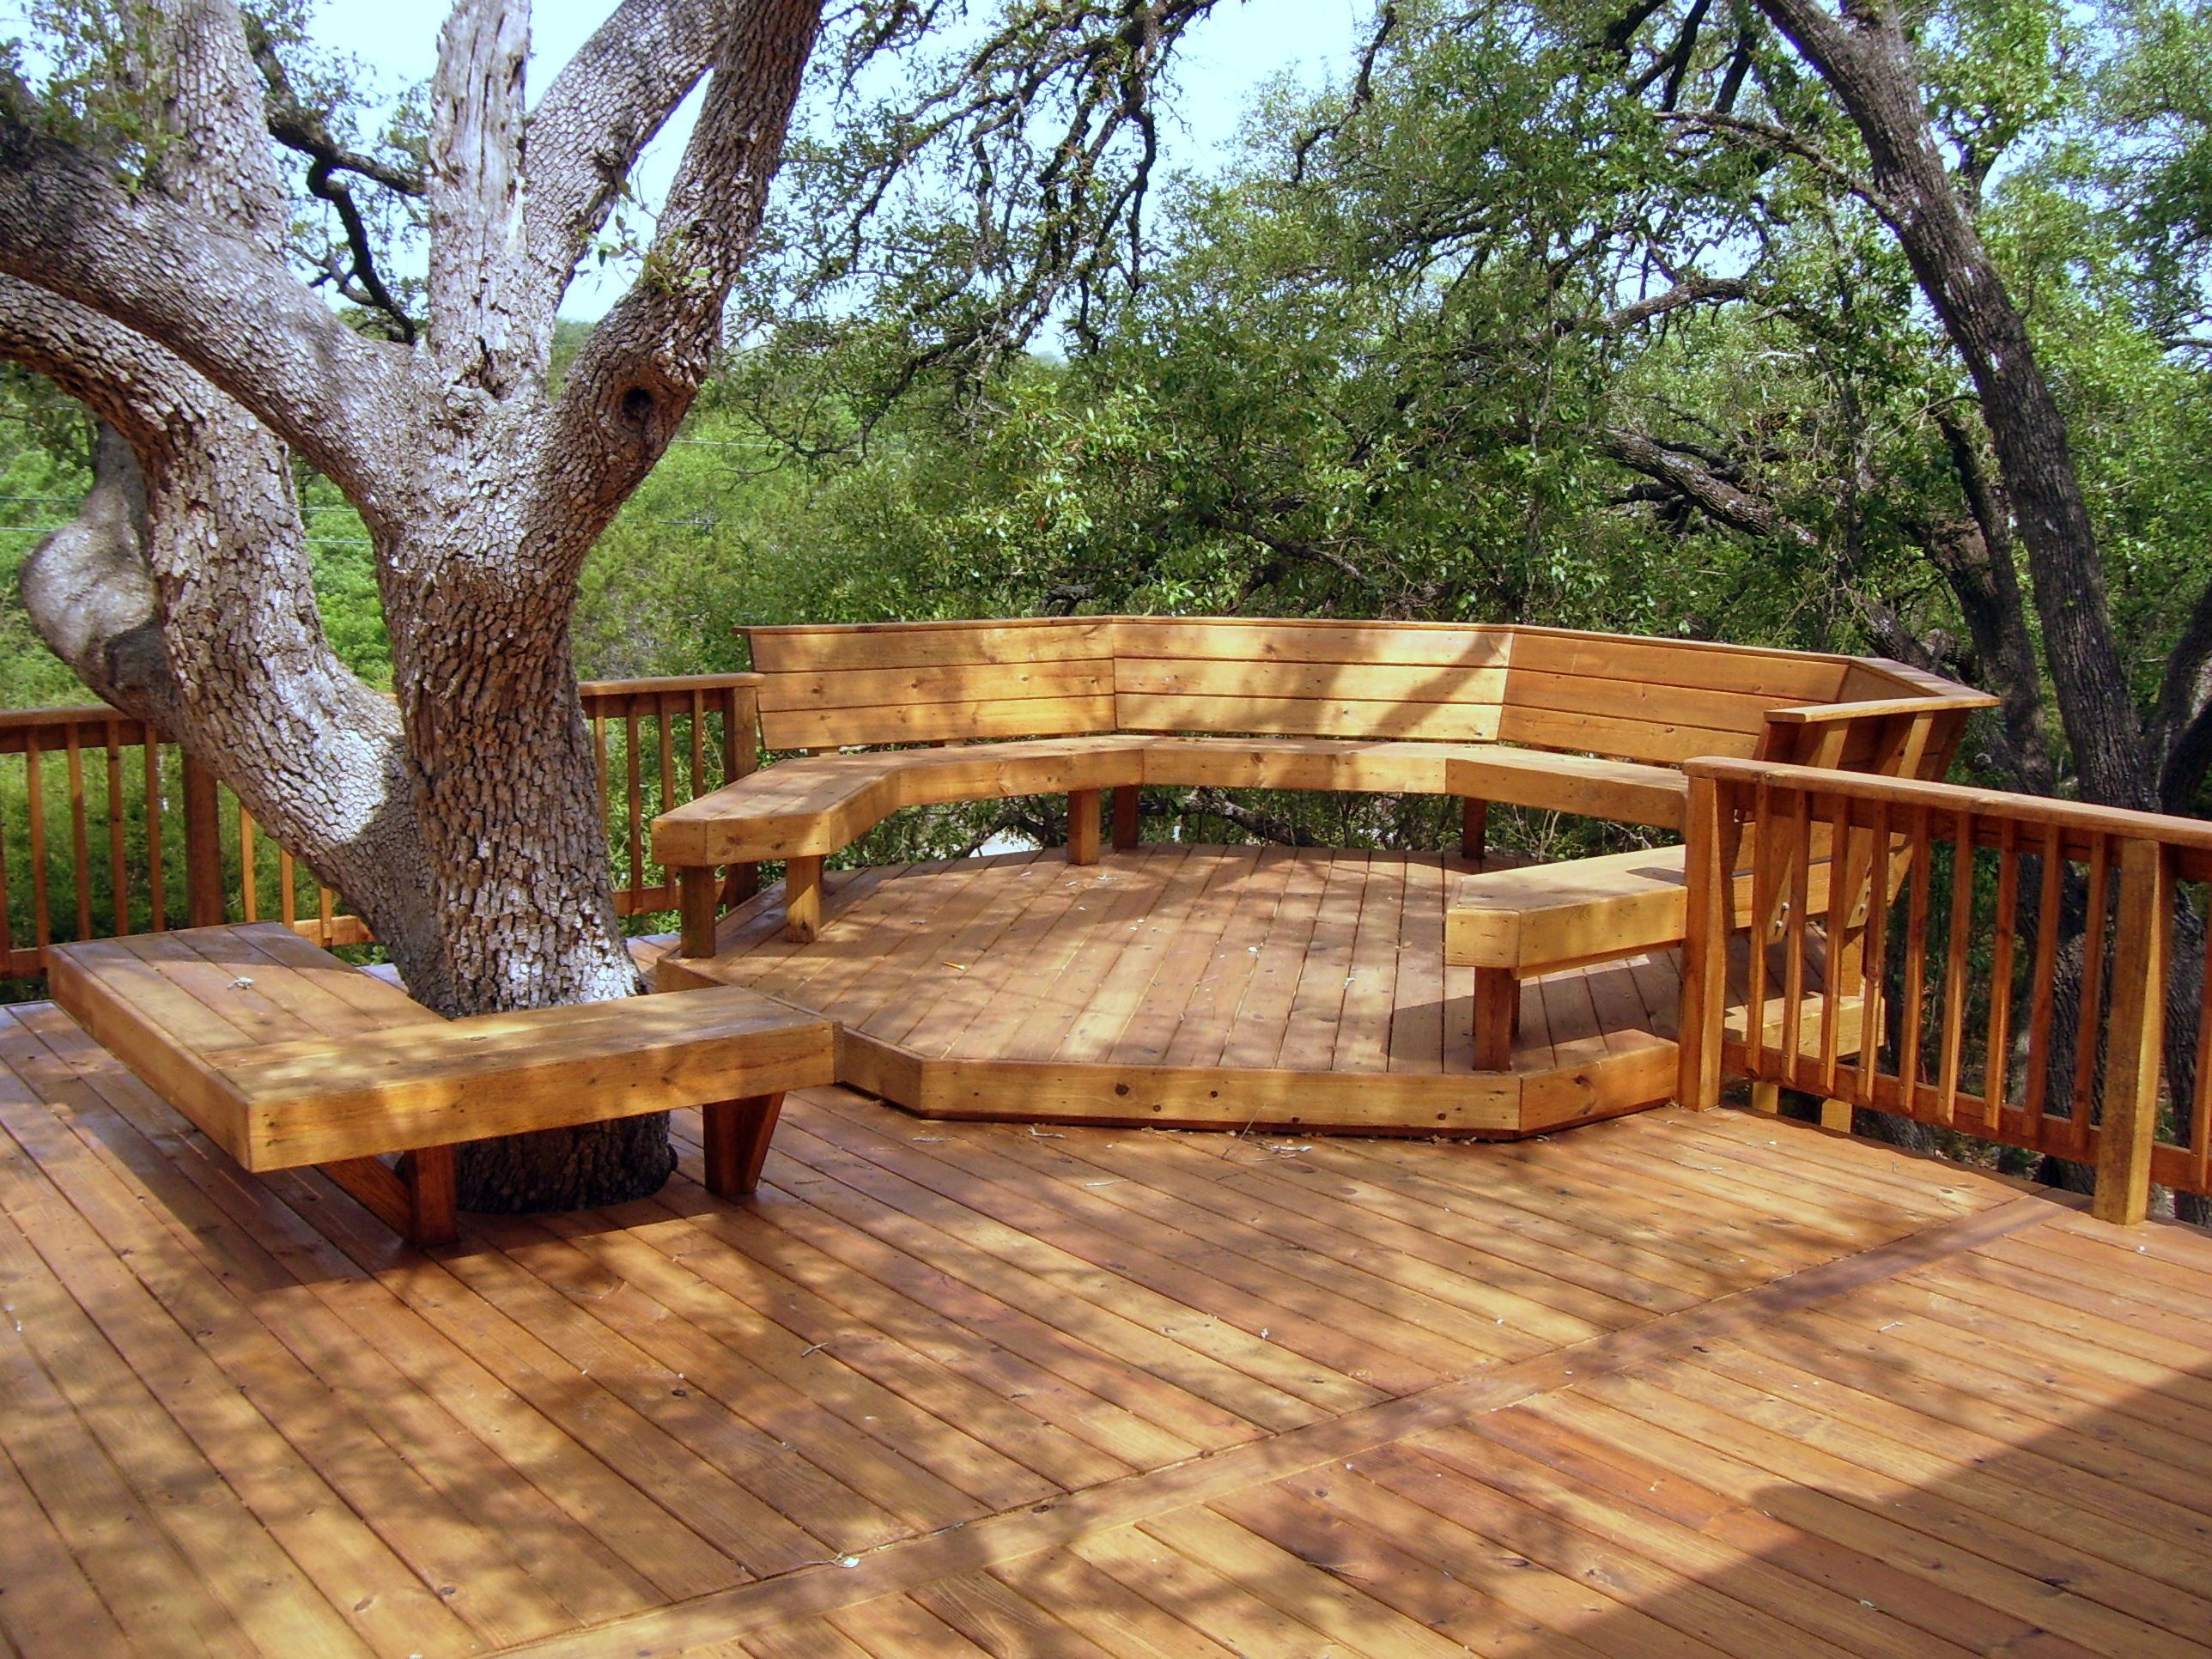 107 best wood decks patios images on pinterest wood decks terrace and garden designs amazing wooden backyard decking ideas in the forest area beautiful deck design ideas decks design baanklon Image collections